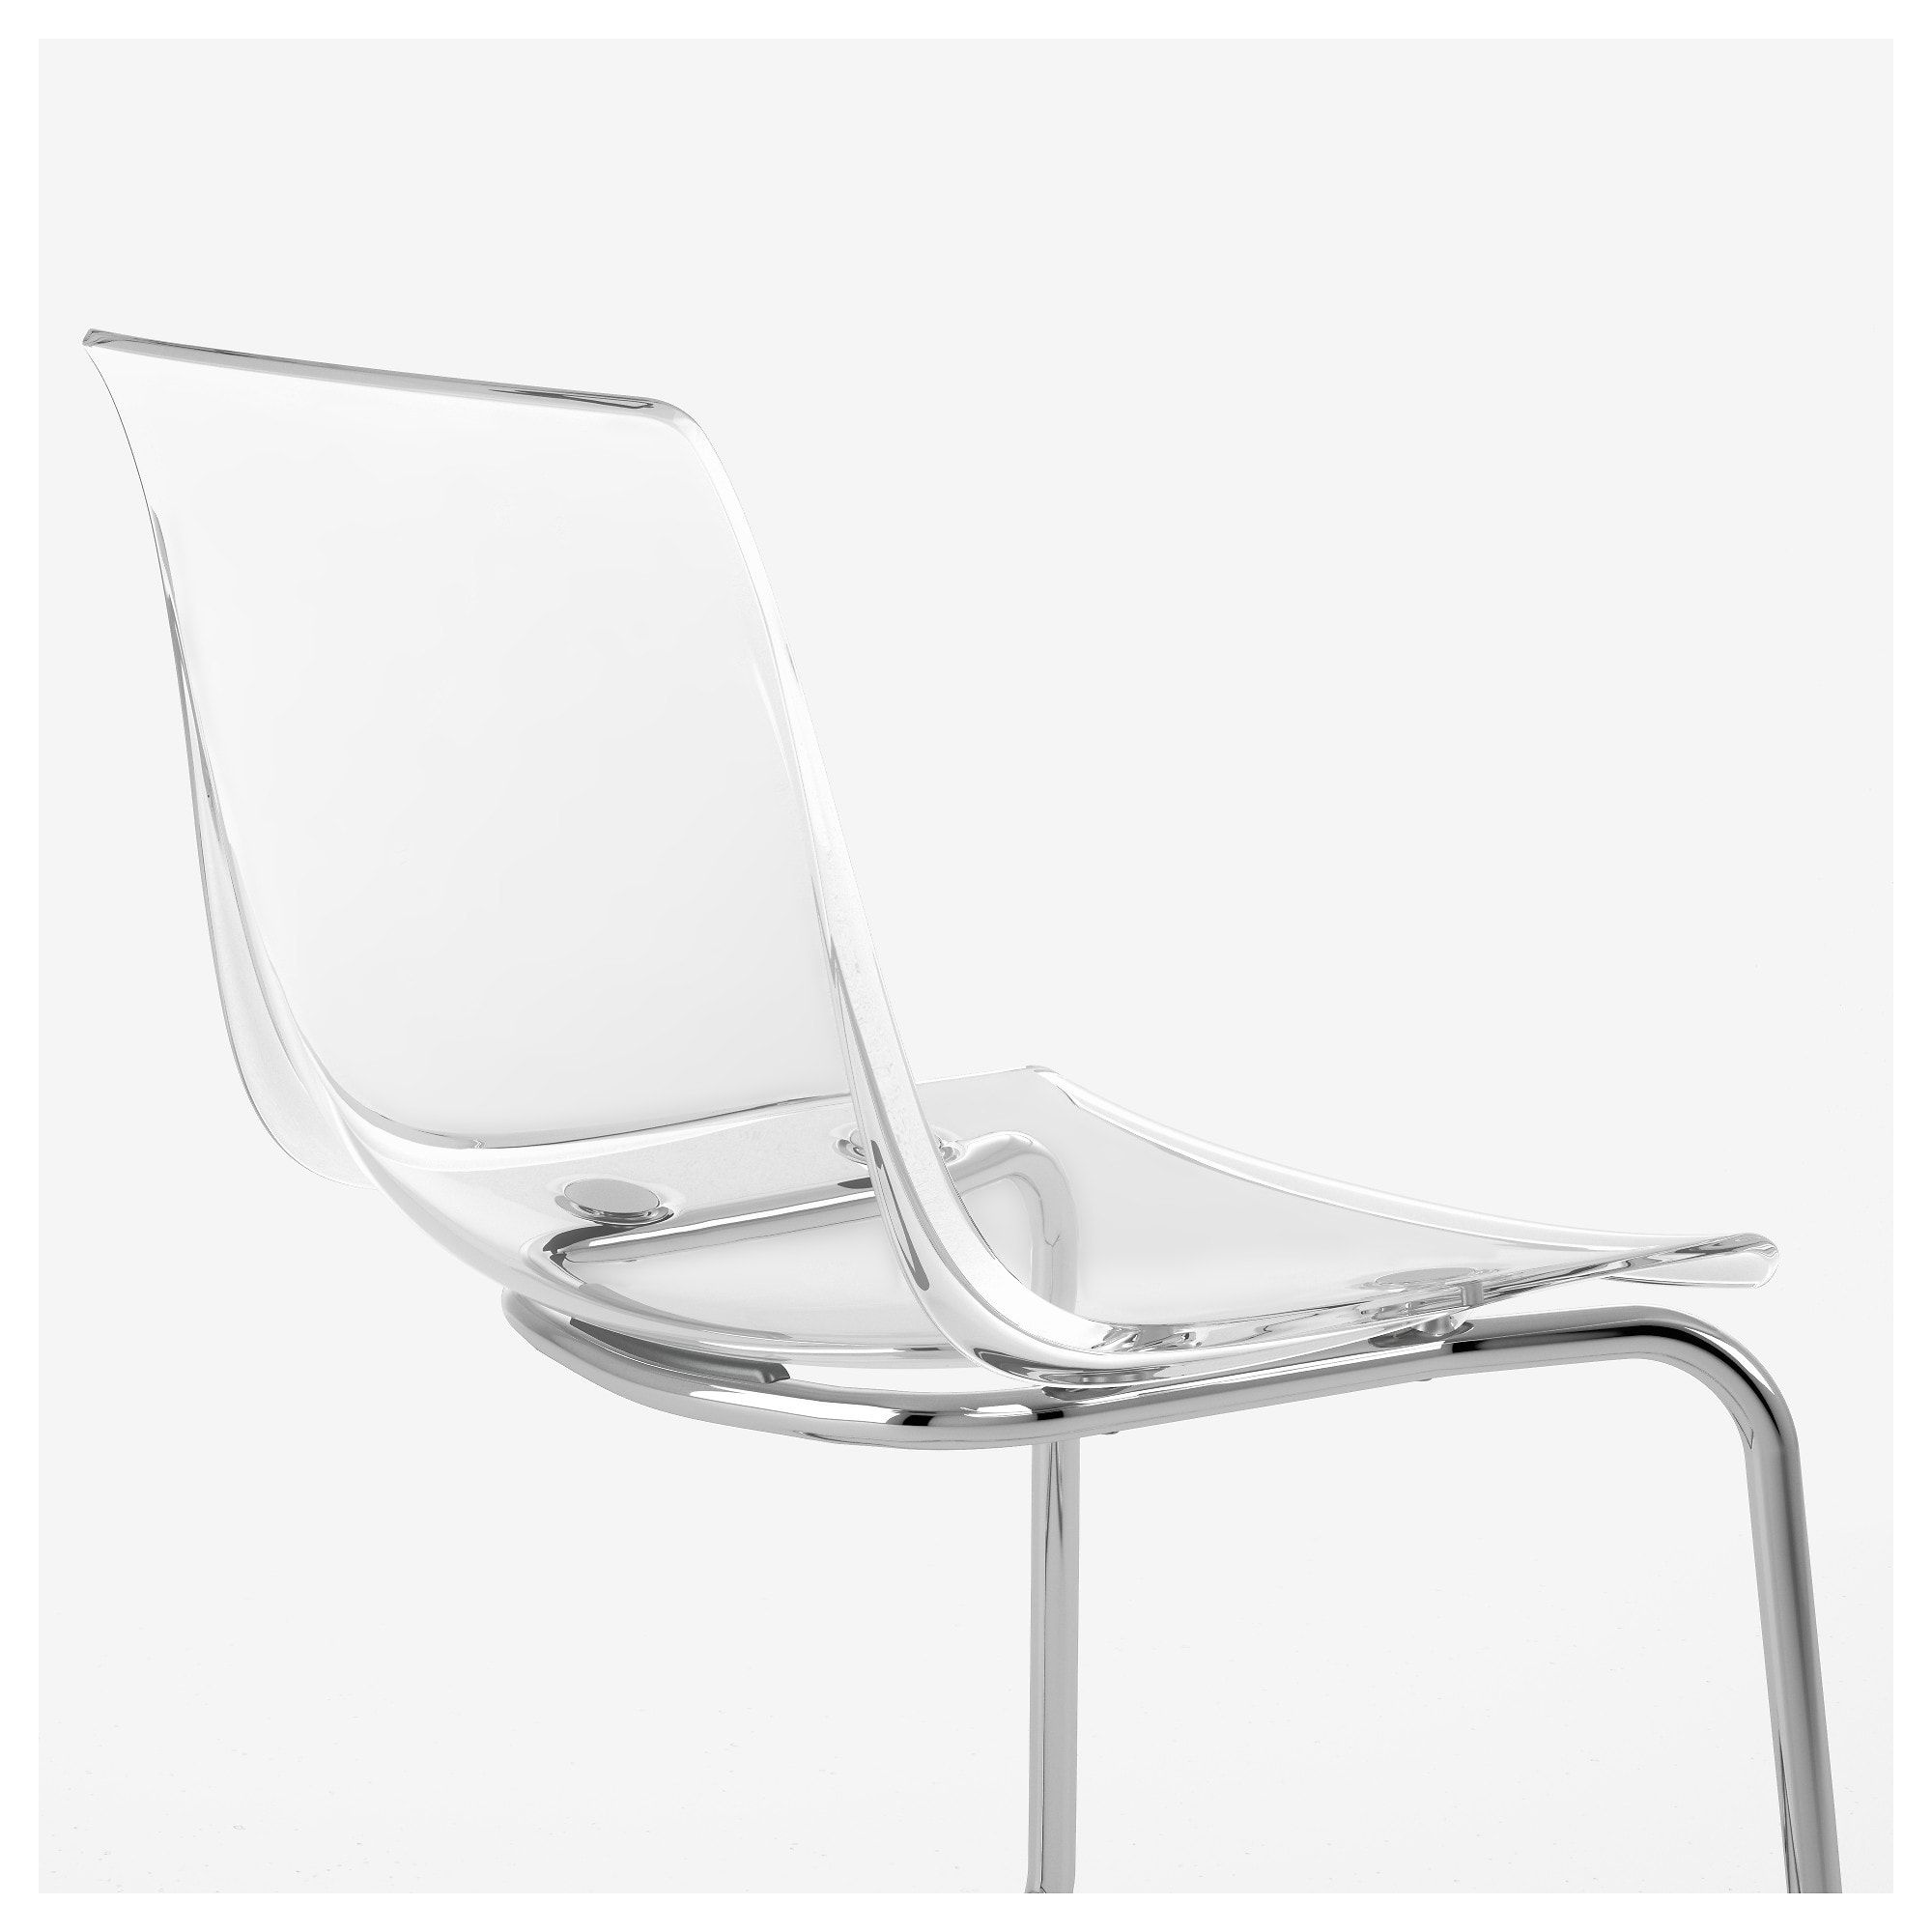 Ikea Us Furniture And Home Furnishings In 2020 Transparent Chair Glass Chair Chrome Plating